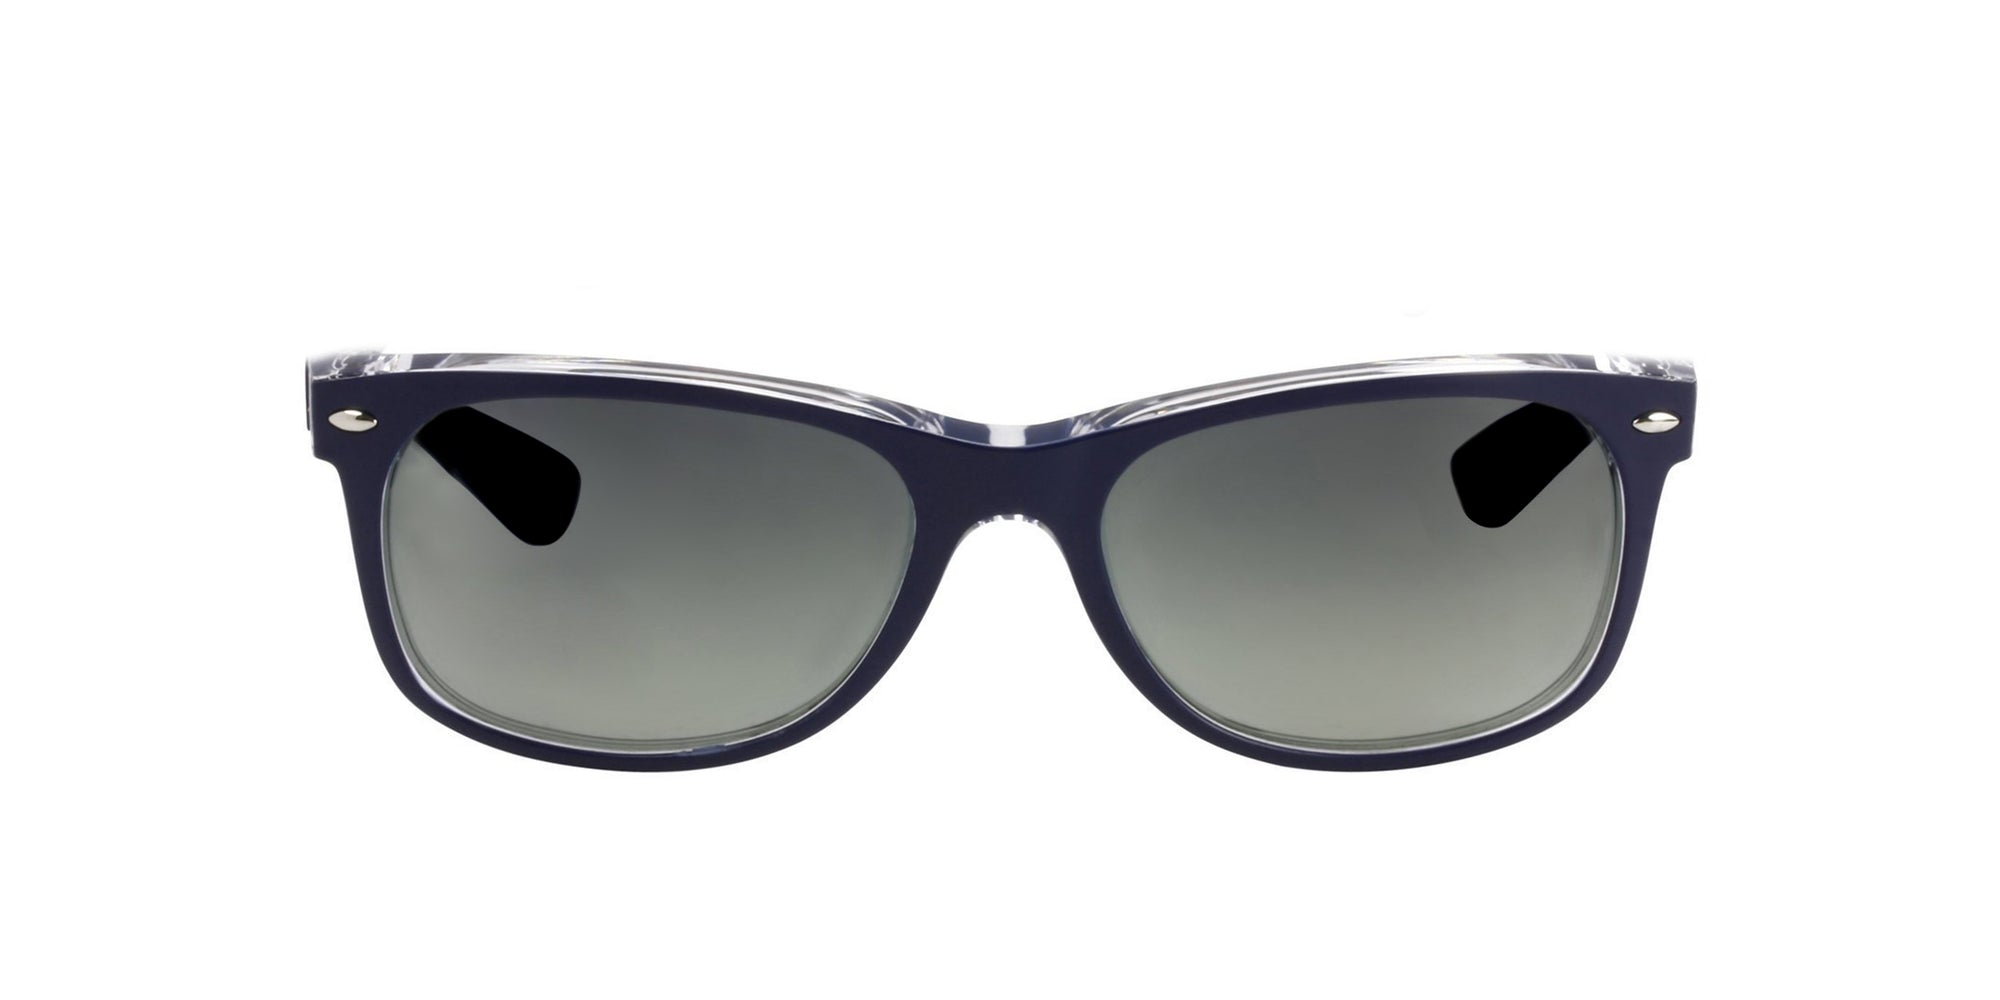 Ray Ban - New Wayfarer Blue Wayfarer Men Sunglasses - 55mm-Sunglasses-Designer Eyes